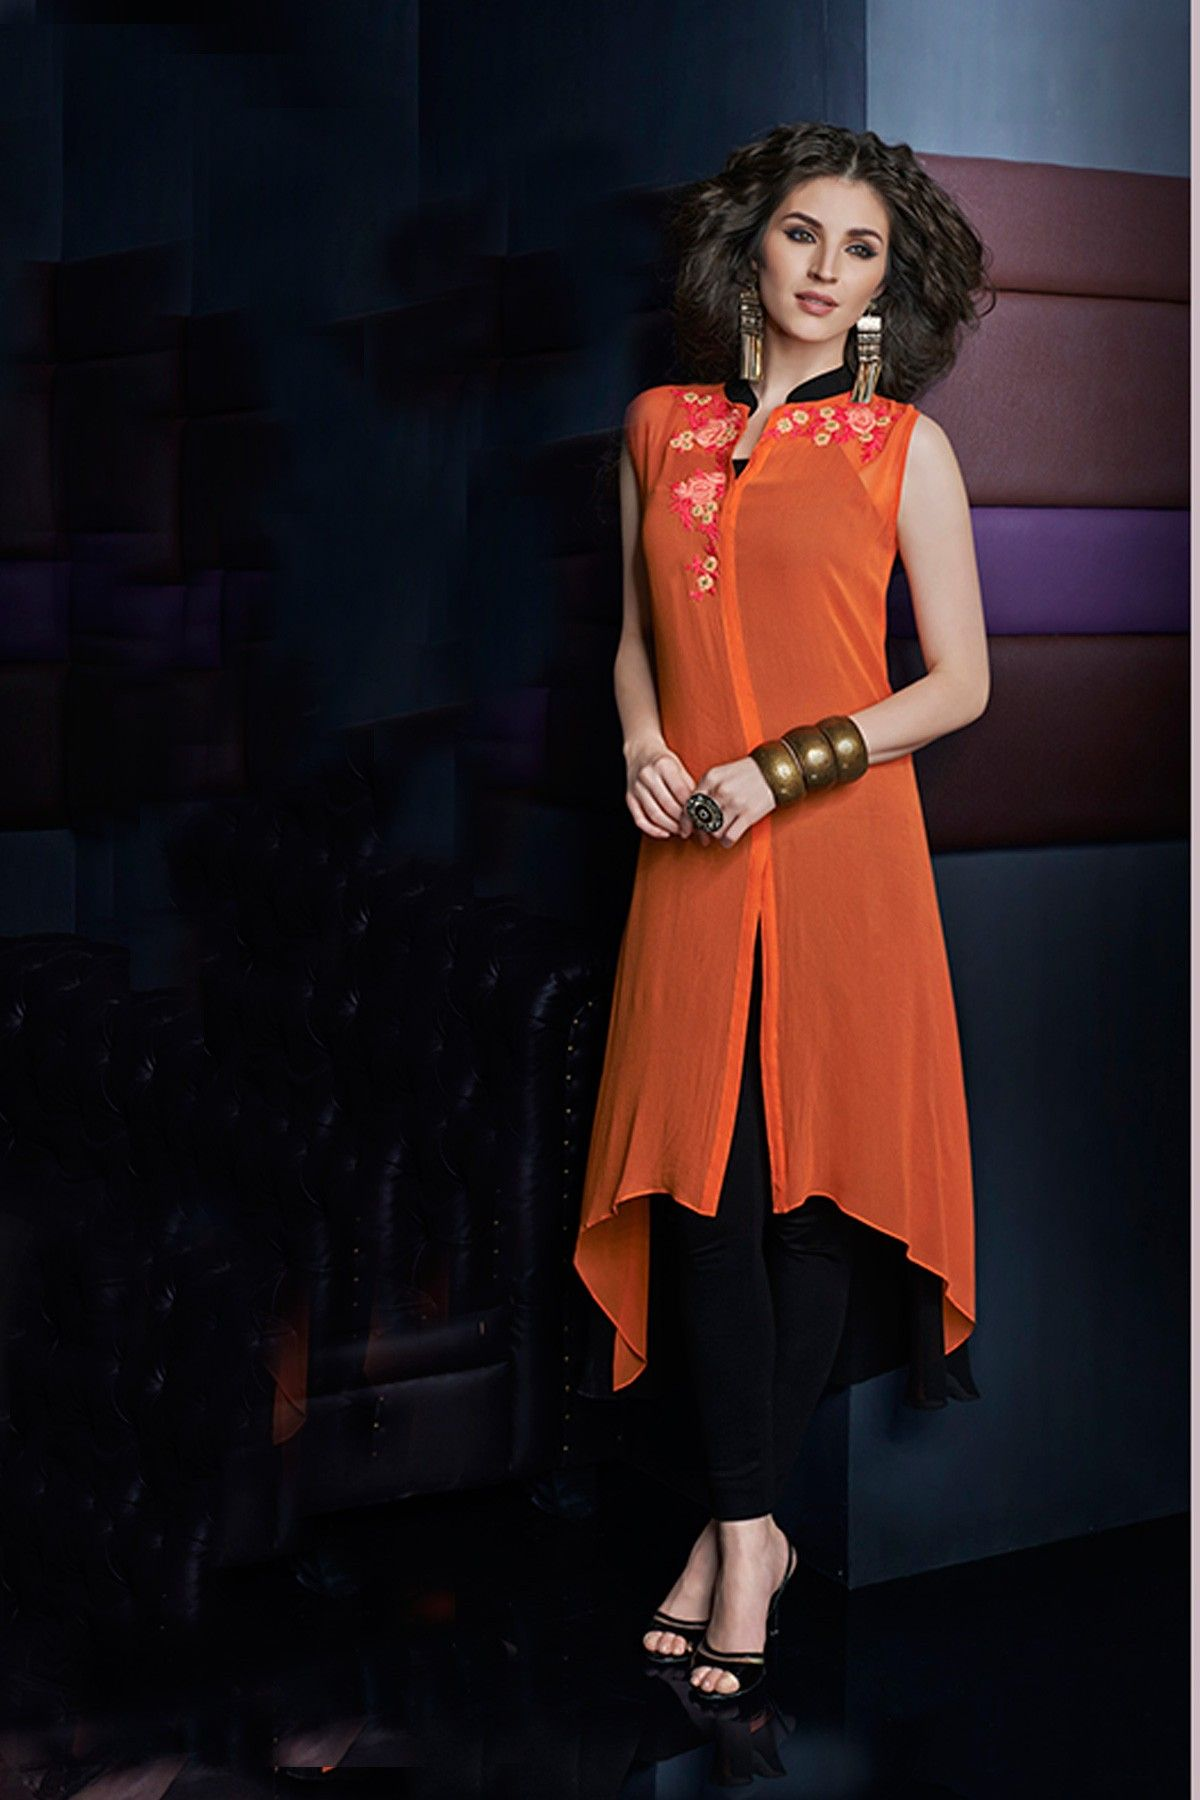 Orange mesmerizing georgette sleeveless  kurti with chinese  collar  -WKR267 -  Tunics   Kurtis  summer  party  wear  sexy  classy  new   collection 14c257086